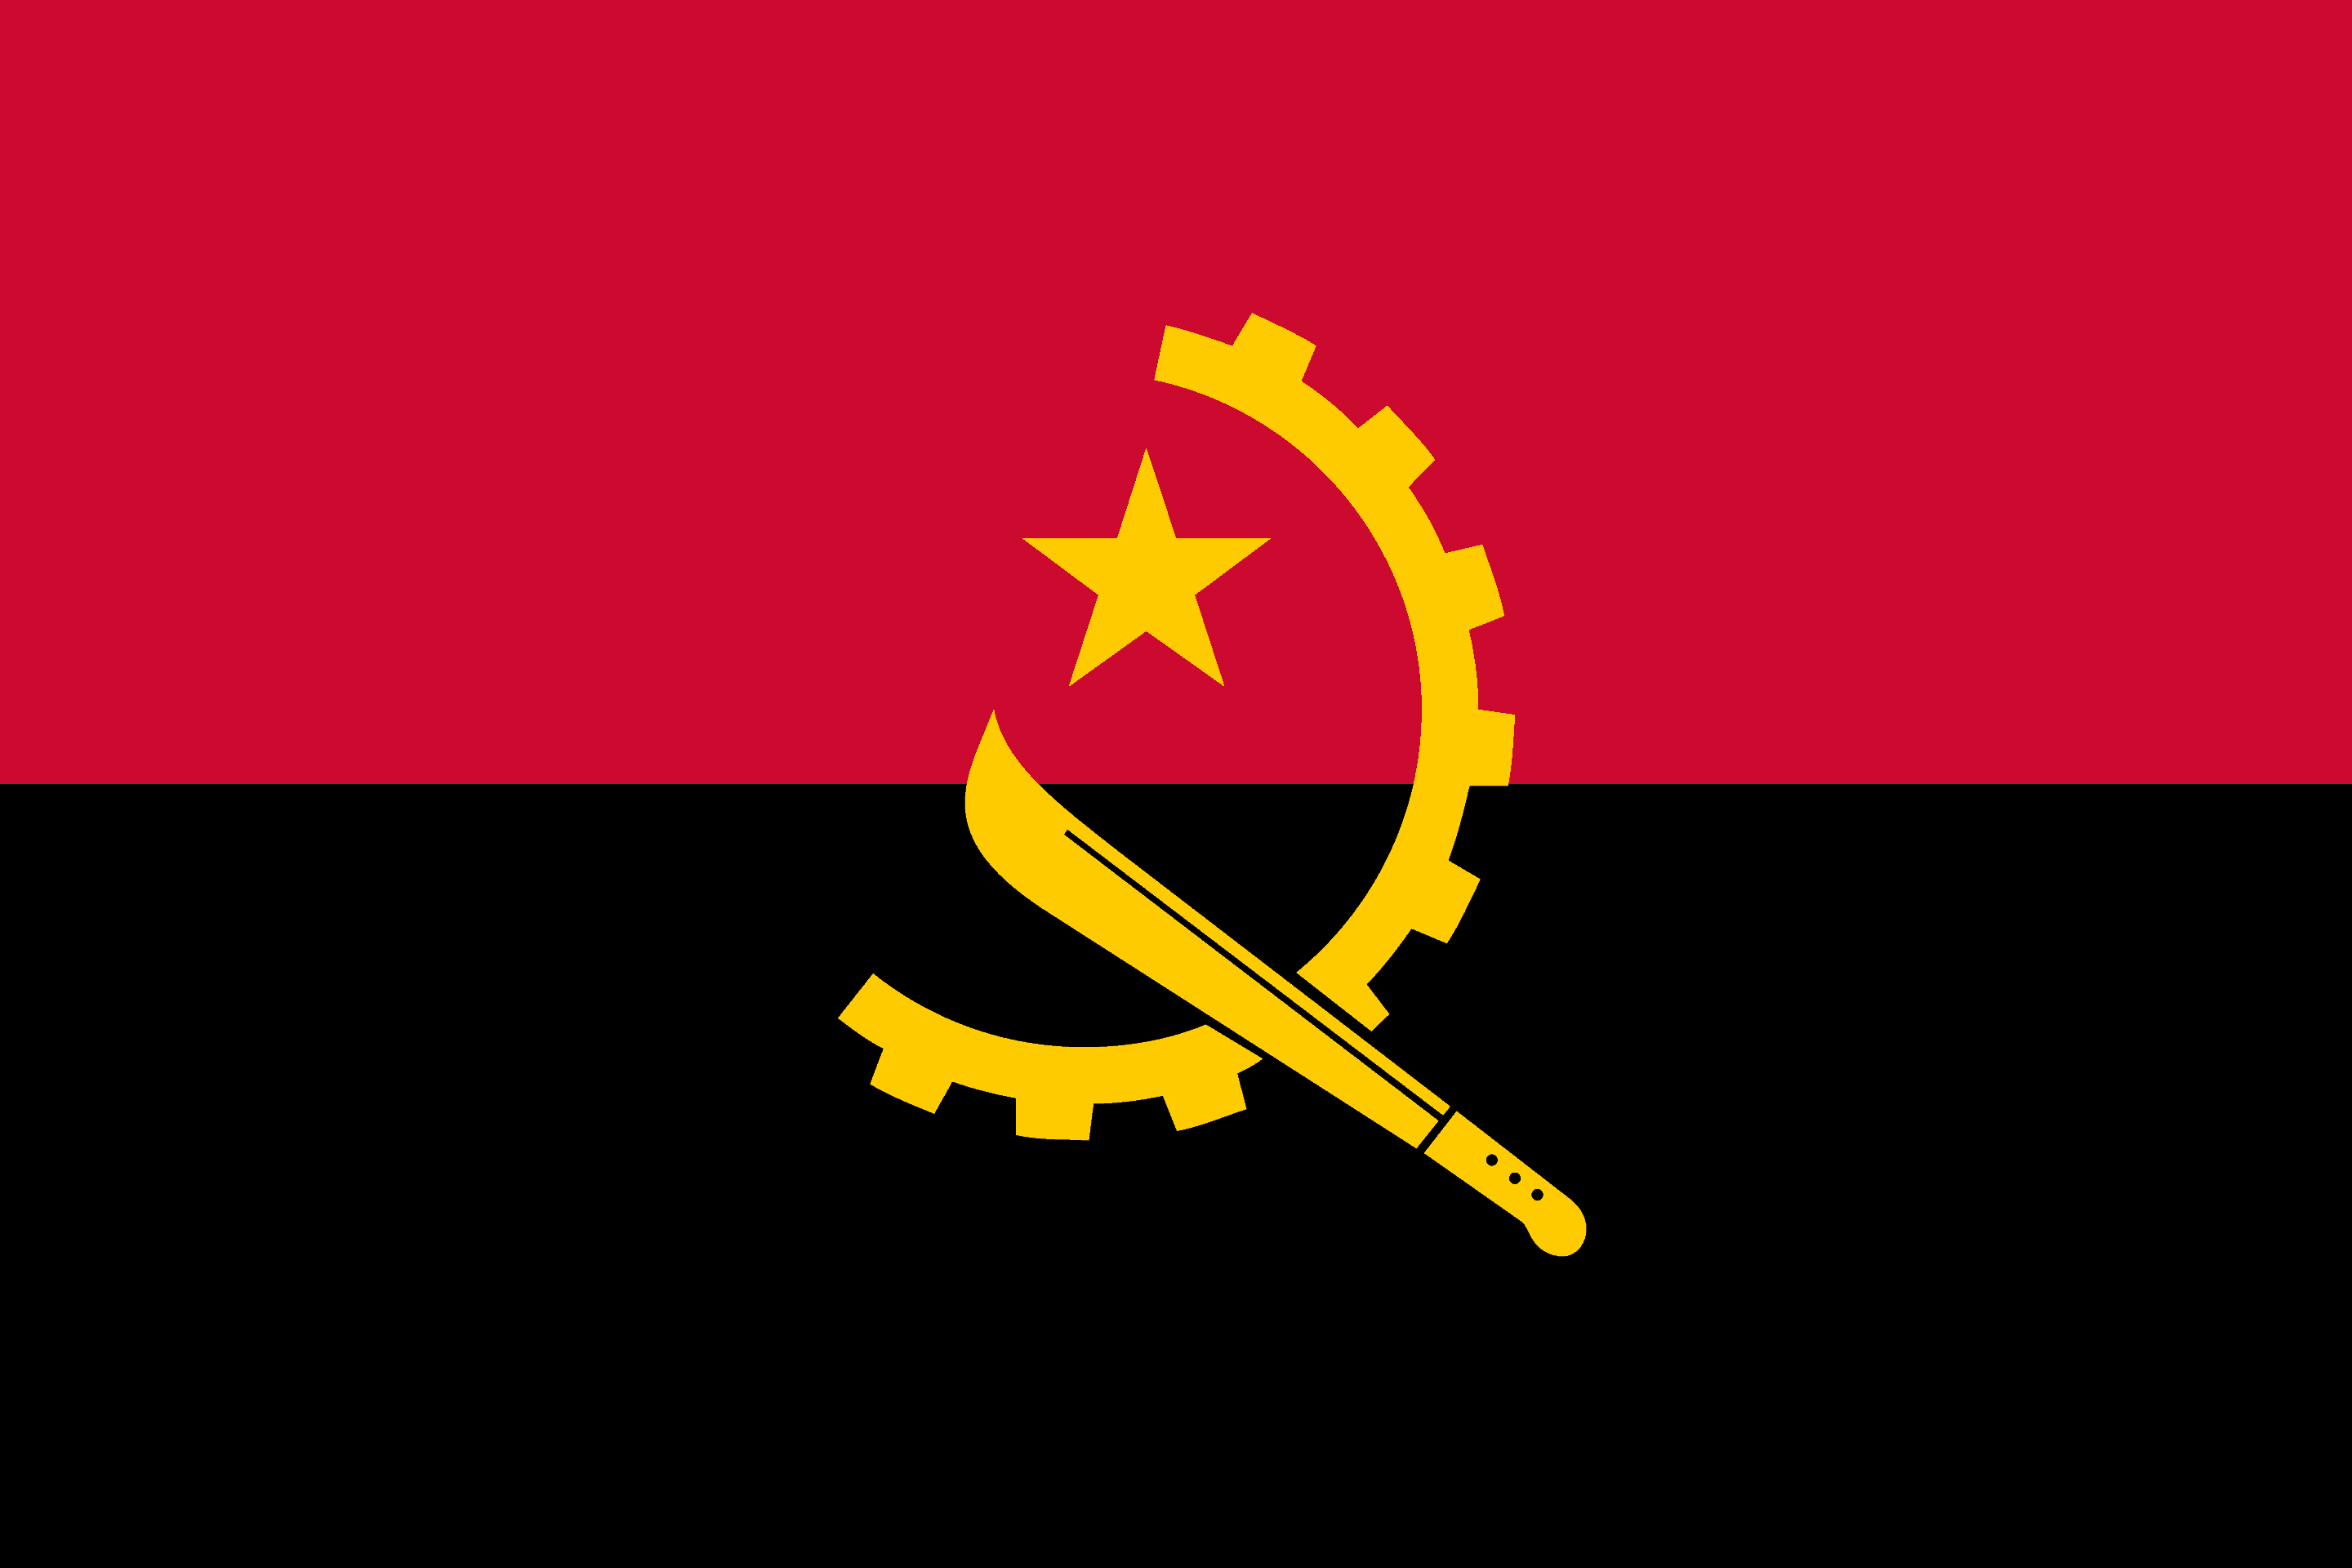 Republic of Angola Flag - Drone laws in Angola